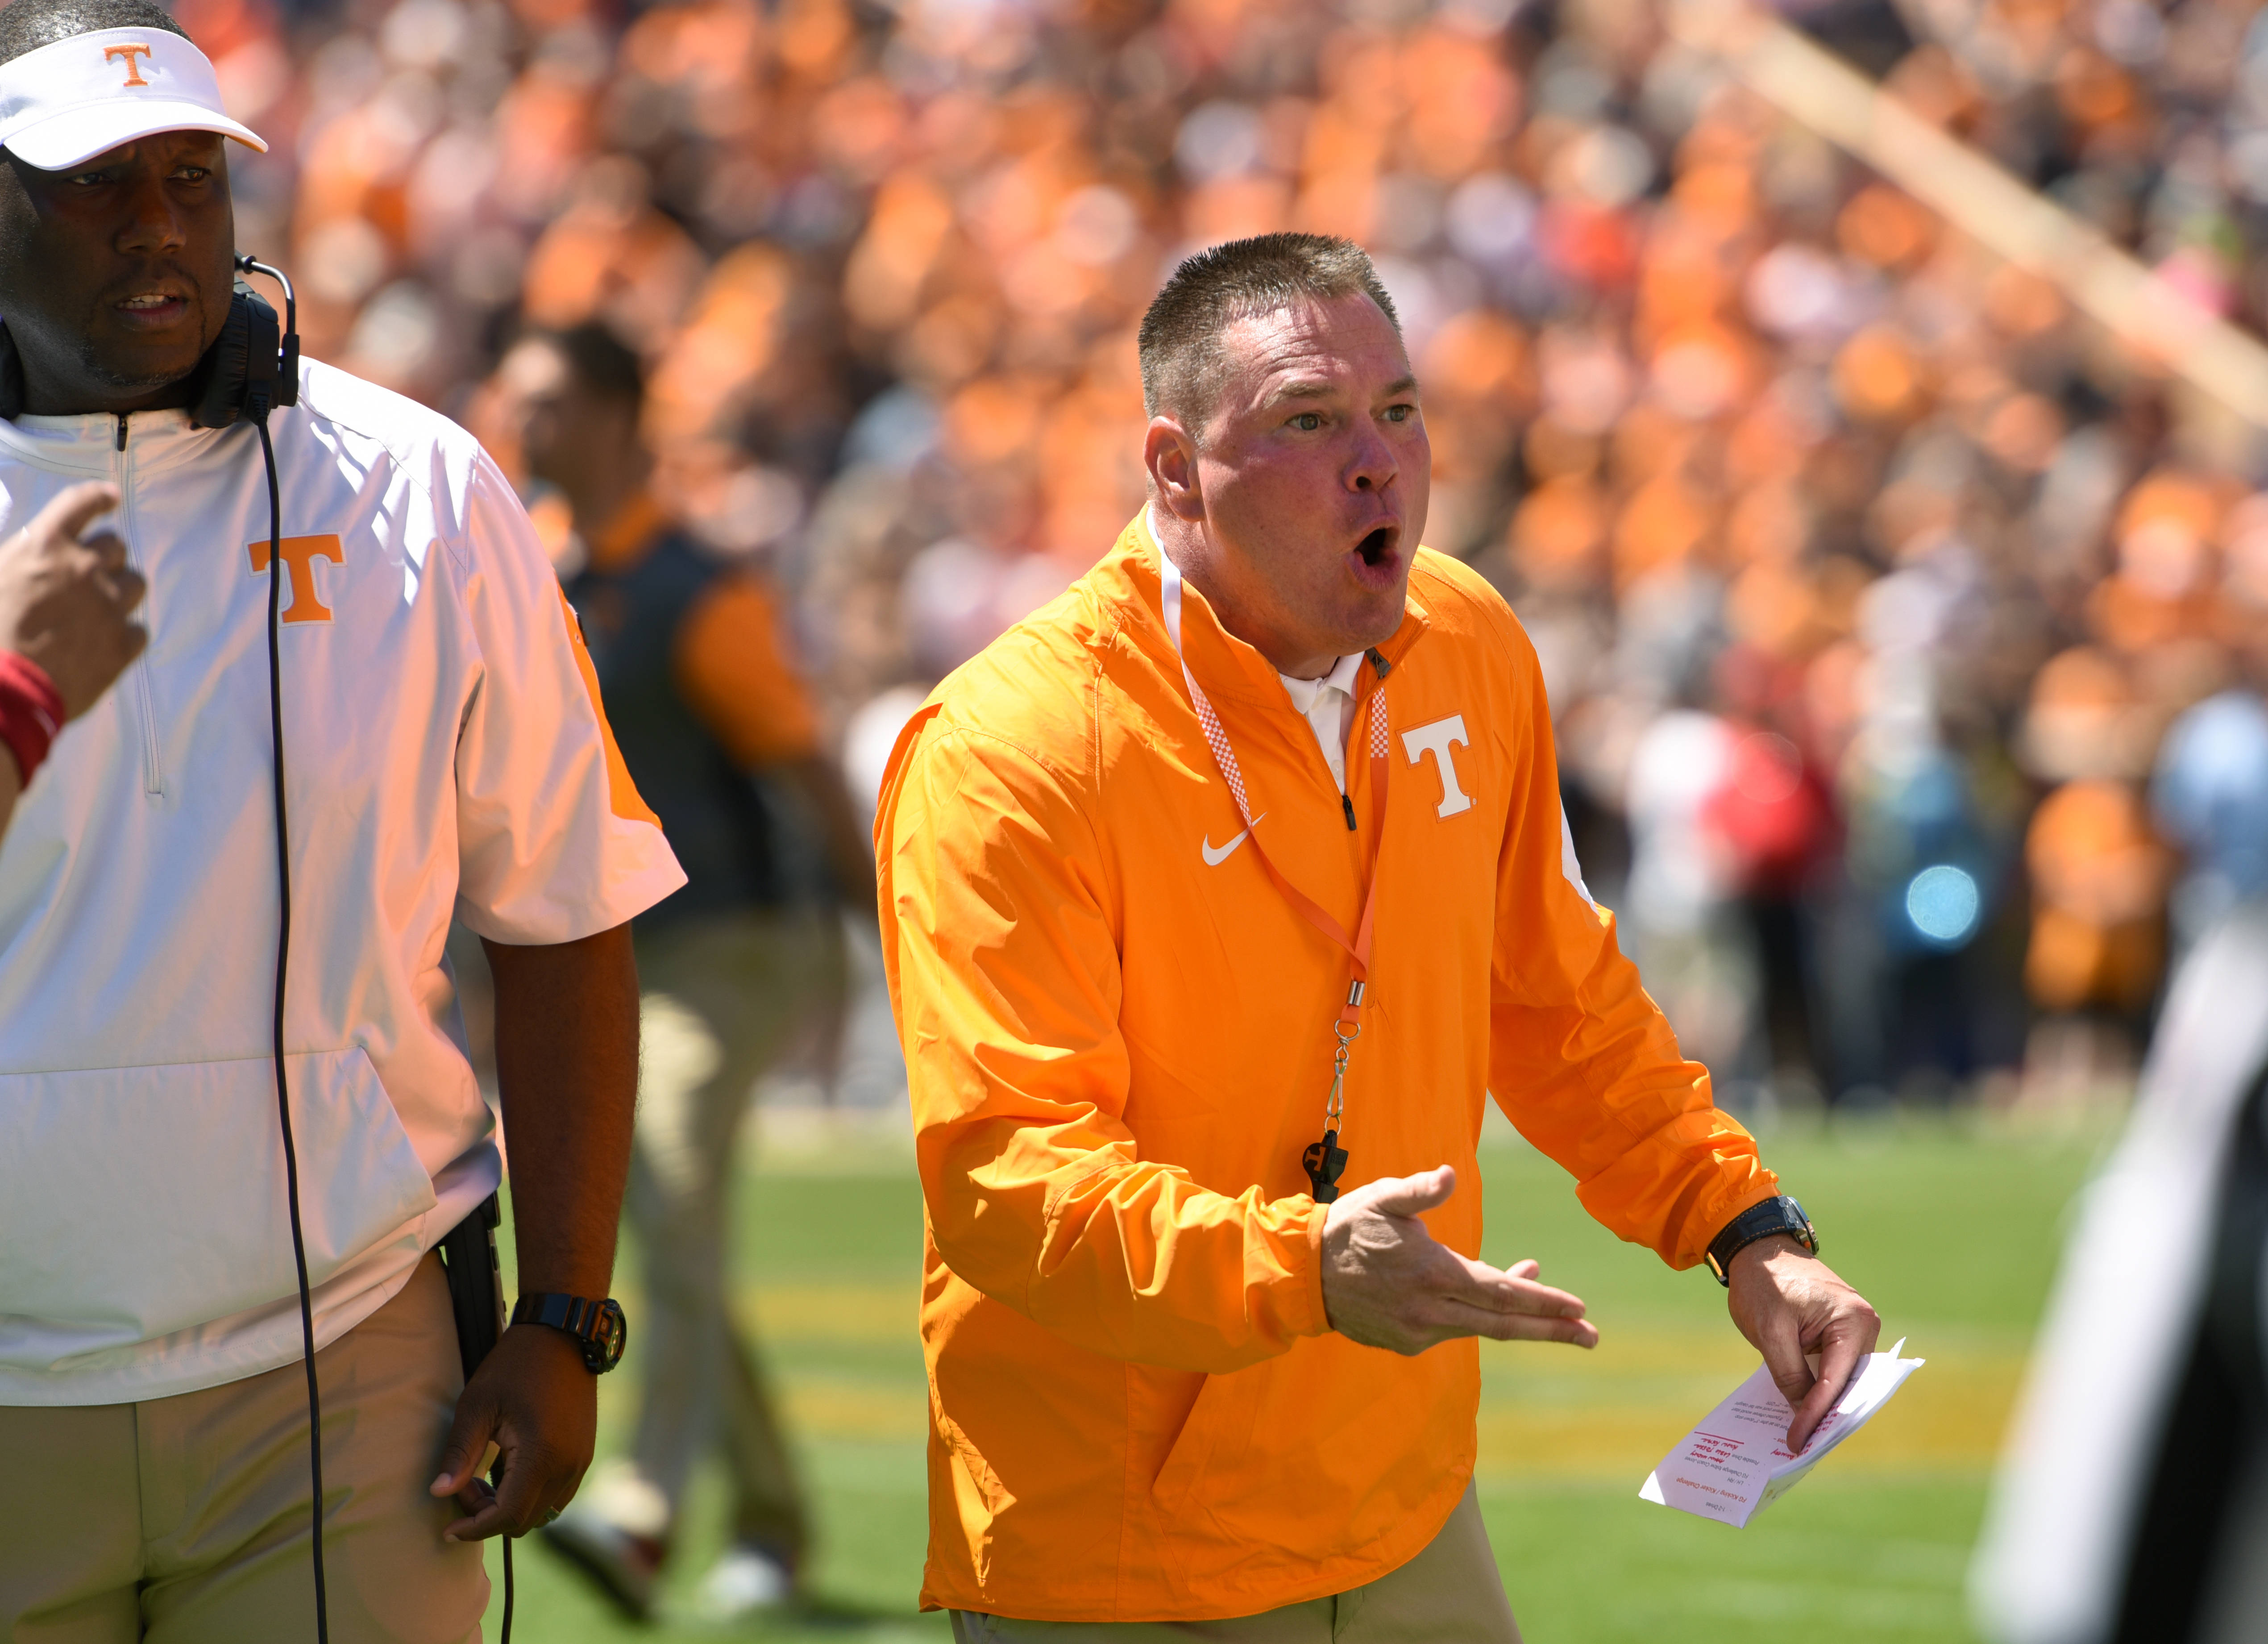 Tennessee head football coach Butch Jones instructs his players during an NCAA college football spring game in Knoxville, Tenn., Saturday, April 16, 2016. (Michael Patrick/Knoxville News Sentinel via AP) MANDATORY CREDIT